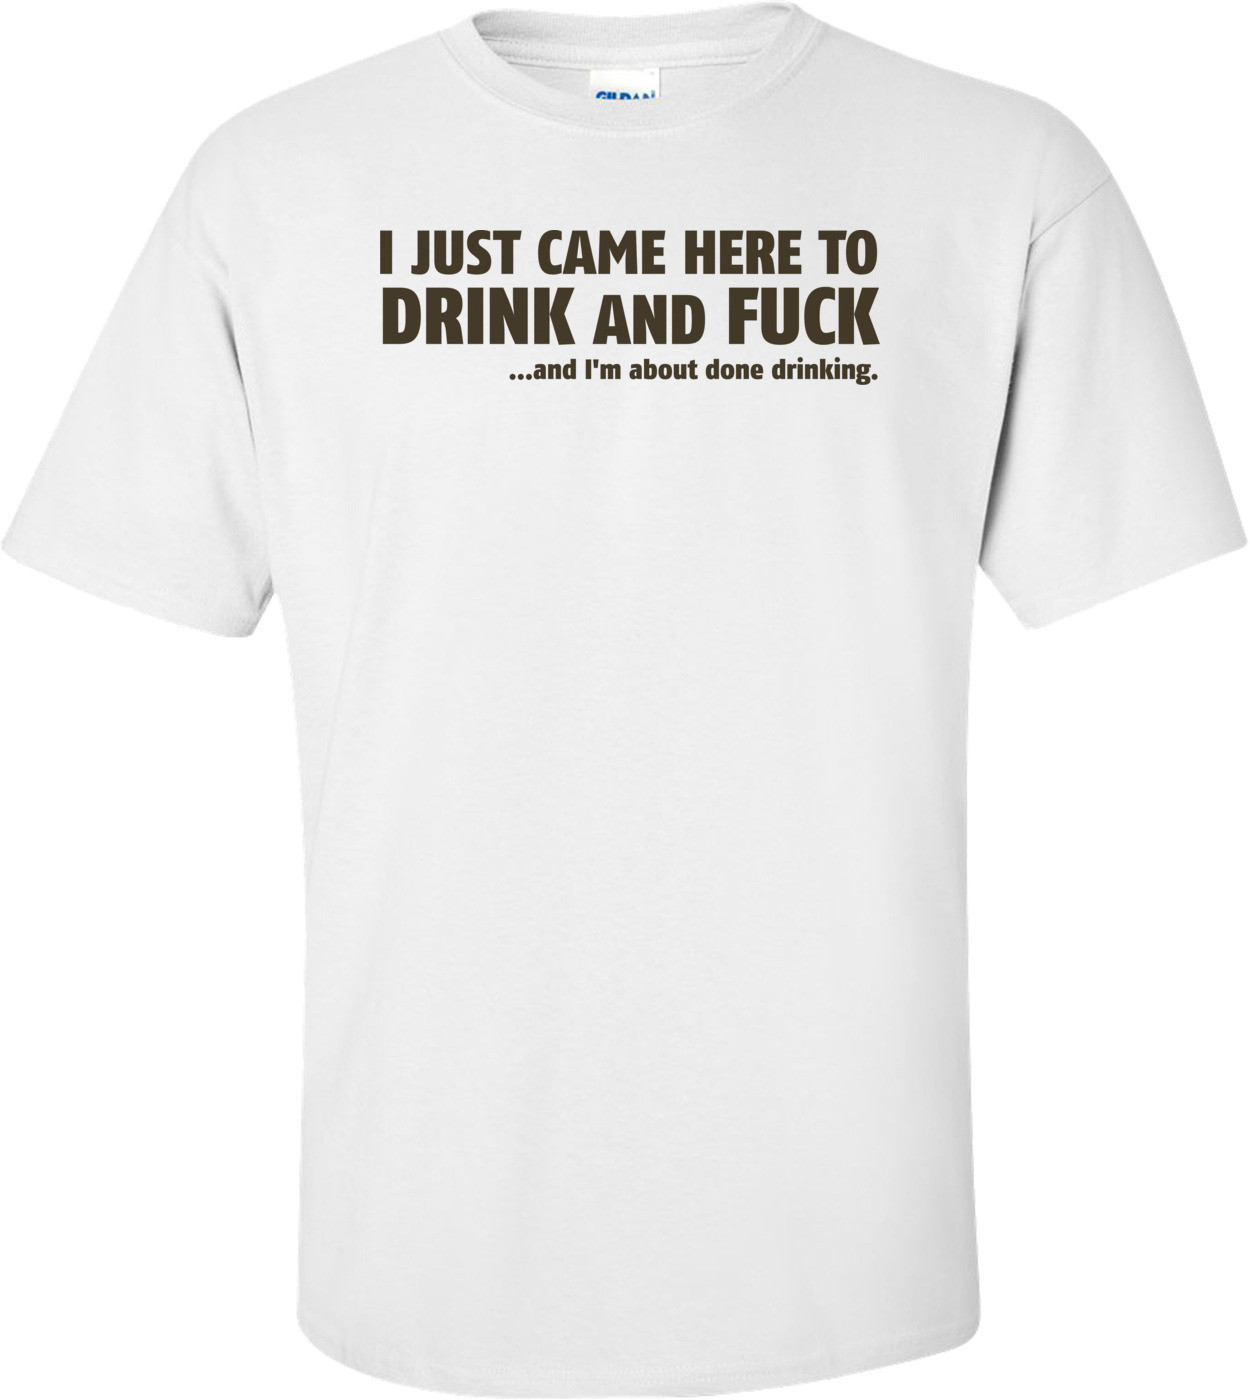 I Just Came Here To Drink And Fuck...and I'm About Done Drinking T-shirt